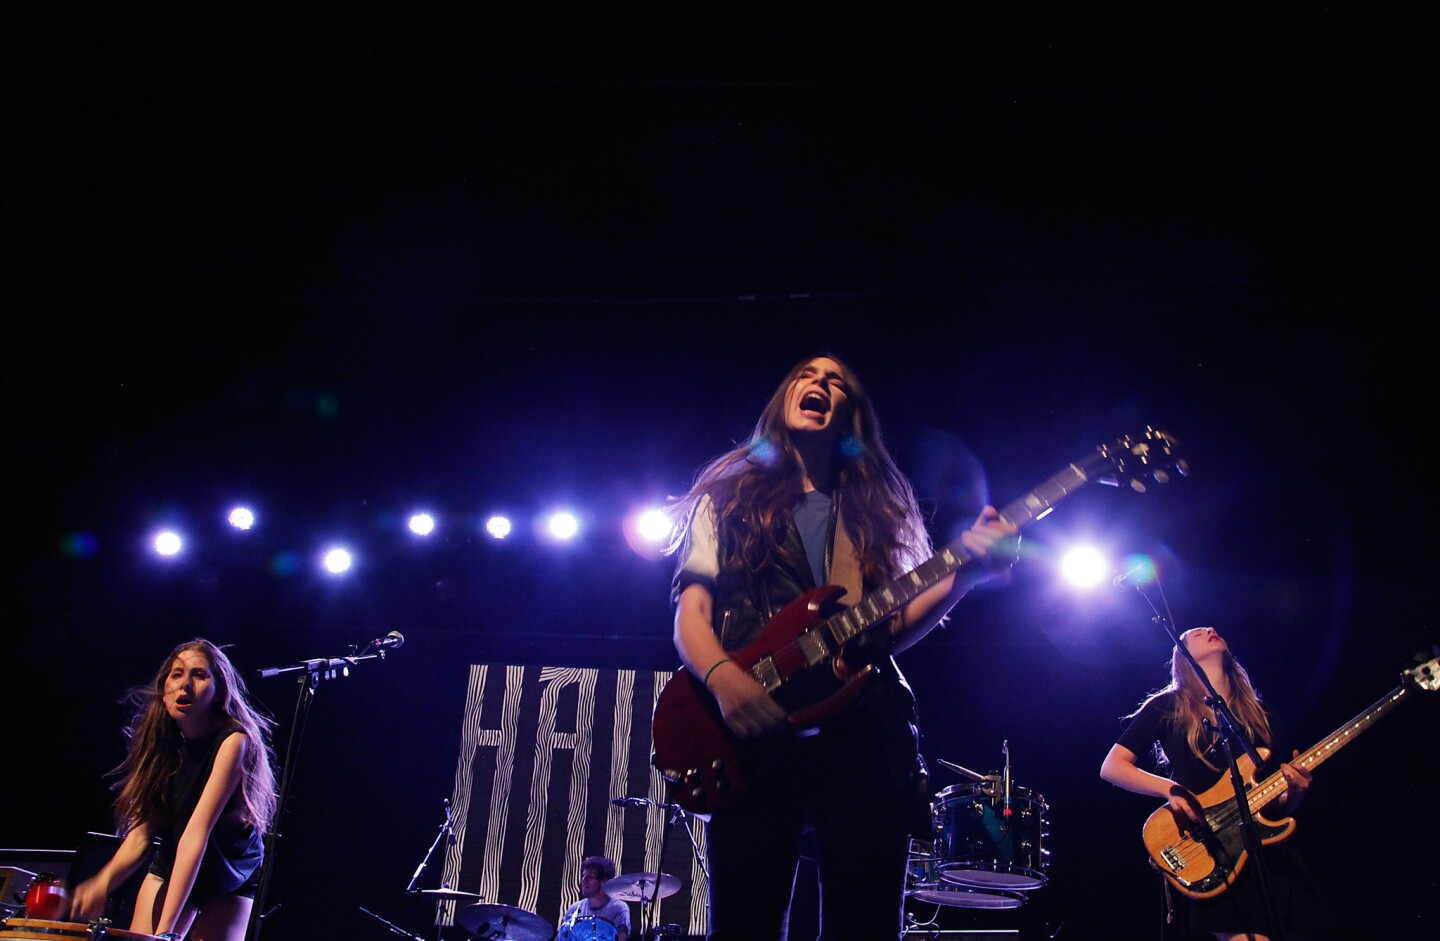 "Haim, whose debut album ""Days Are Gone"" opened at No. 1 in the U.K. and No. 6 in the U.S., played a sold-out homecoming show at the Fonda Theatre in Los Angeles on Wednesday night. Alana, left, Danielle and Este Haim grew up in the Valley. The three sisters' band includes a mister, drummer Dash Hutton."